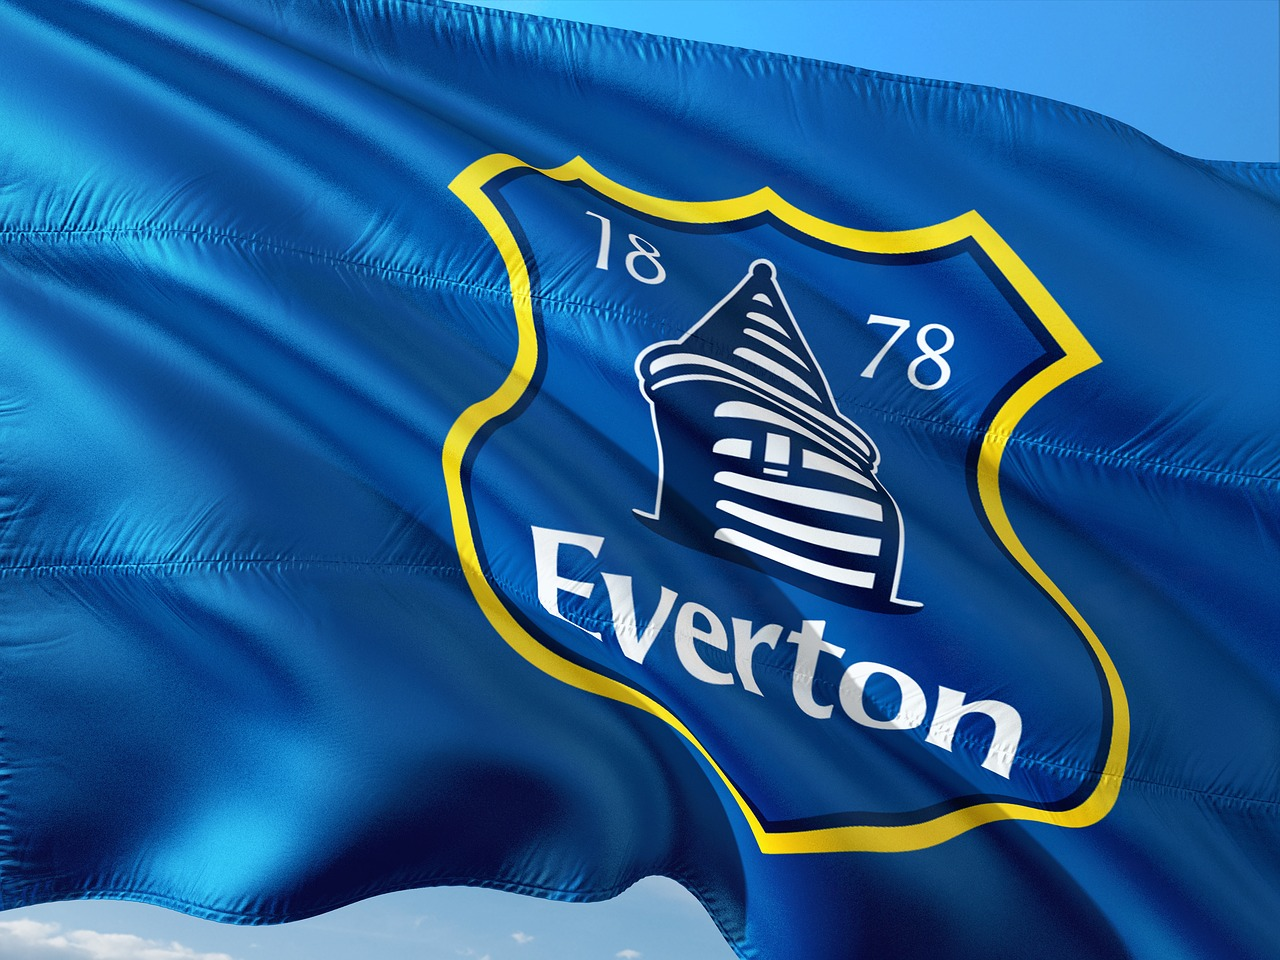 Everton - cover